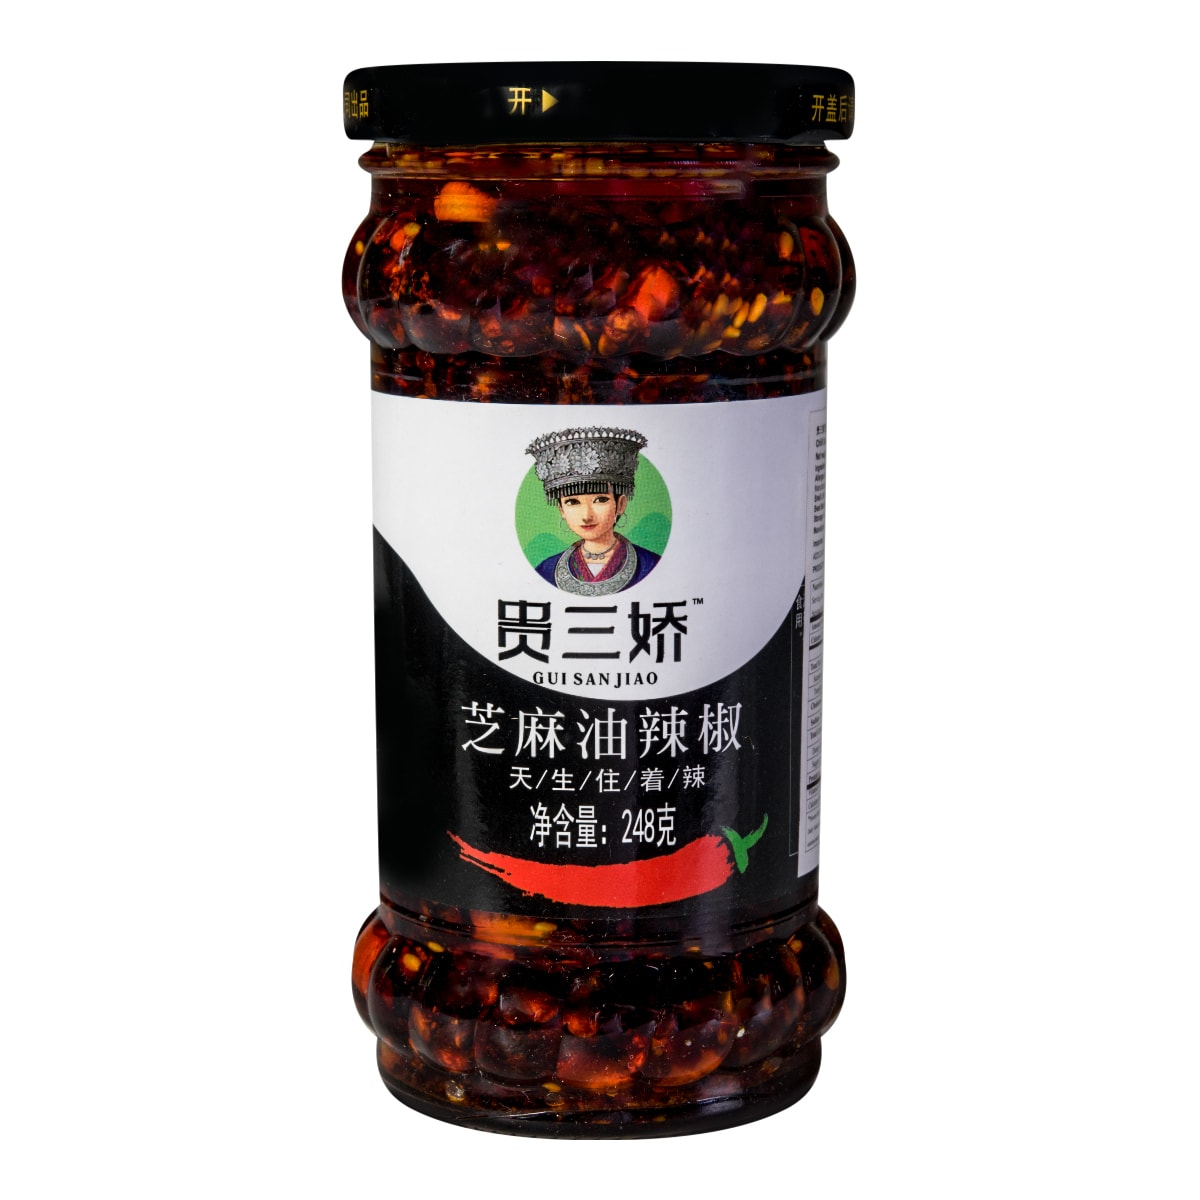 GUI SAN JIAO Chili Sauce with Sesame 248g